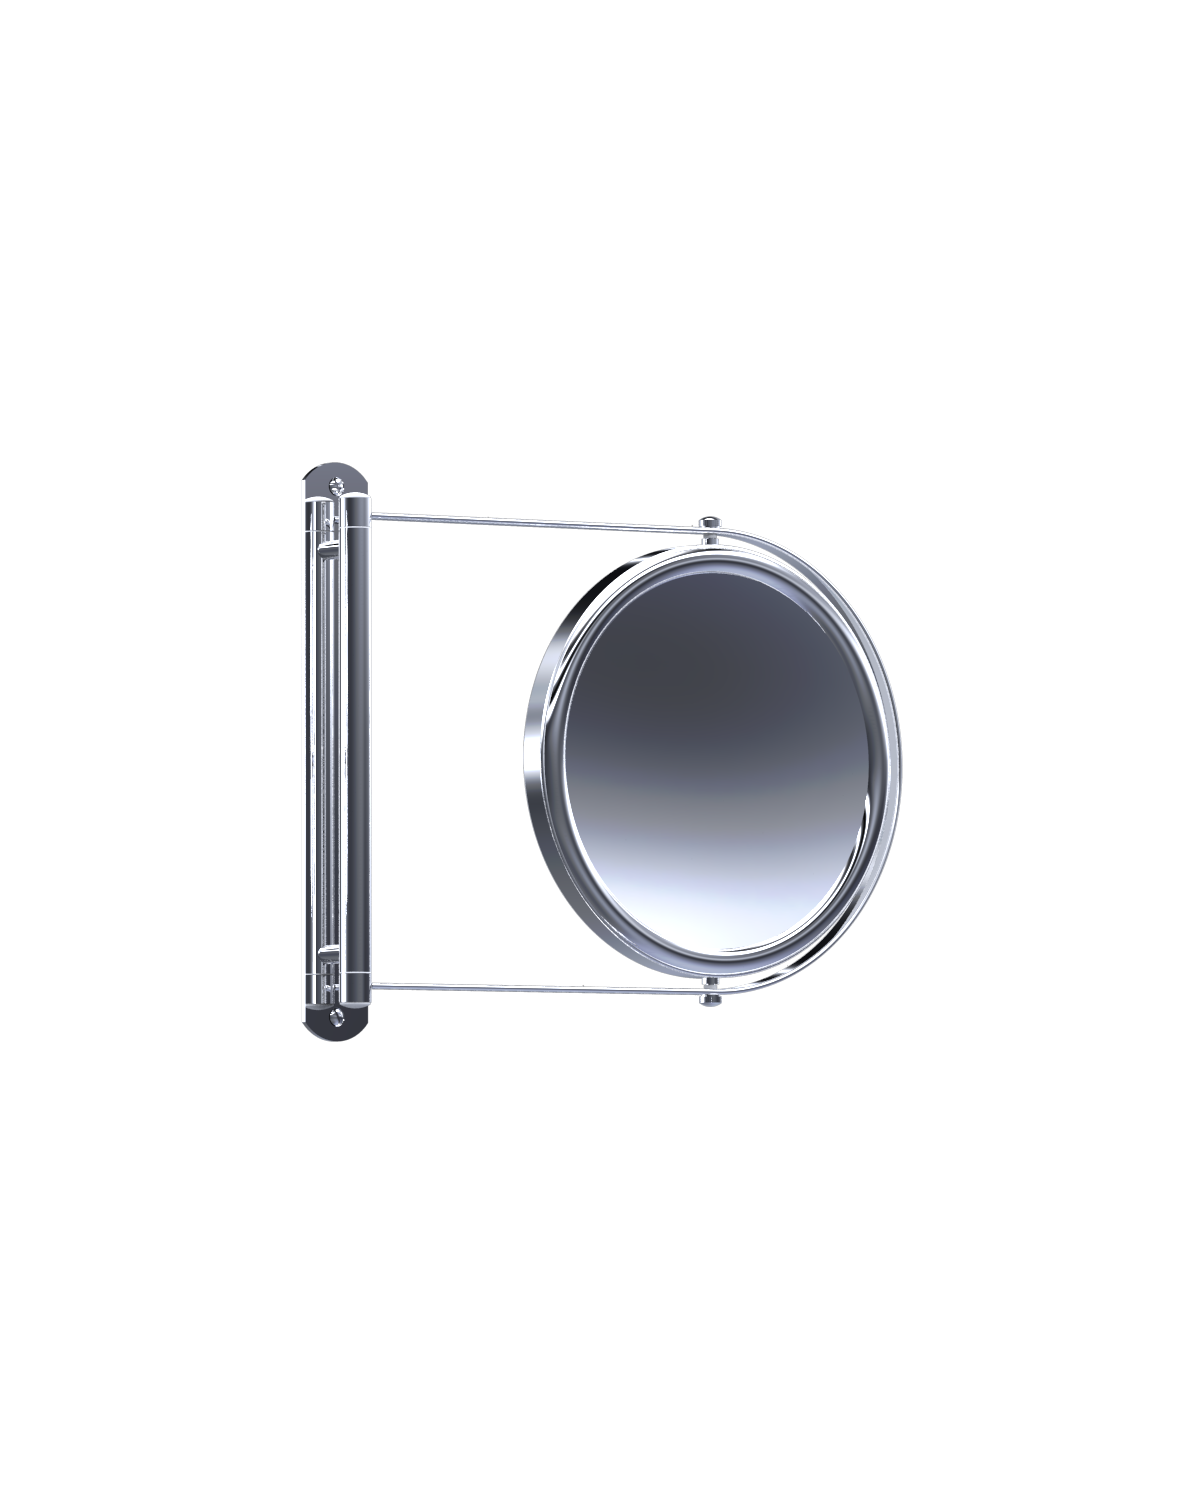 Baci E3-X CHR Baci Basic Round Swing Out Mirror - Unlighted - Polished Chrome